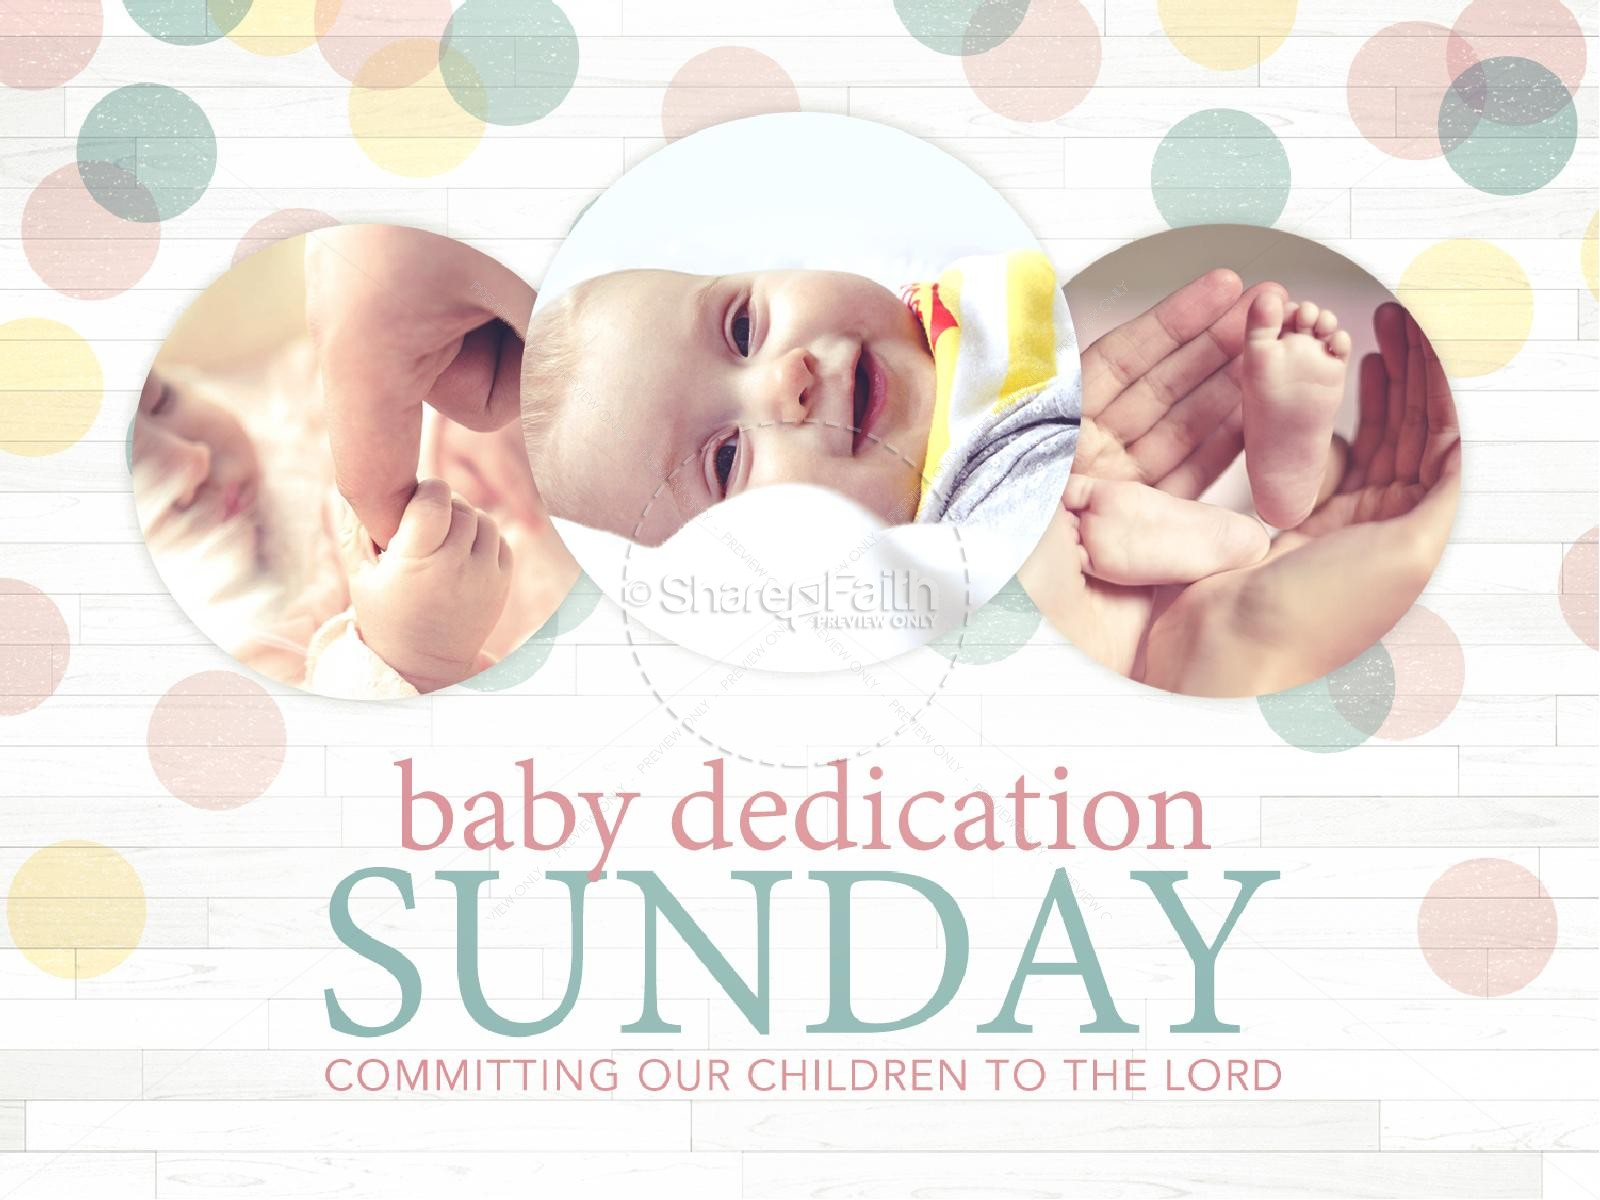 Dedication Invitations For Baby - Life Style By Modernstork.com